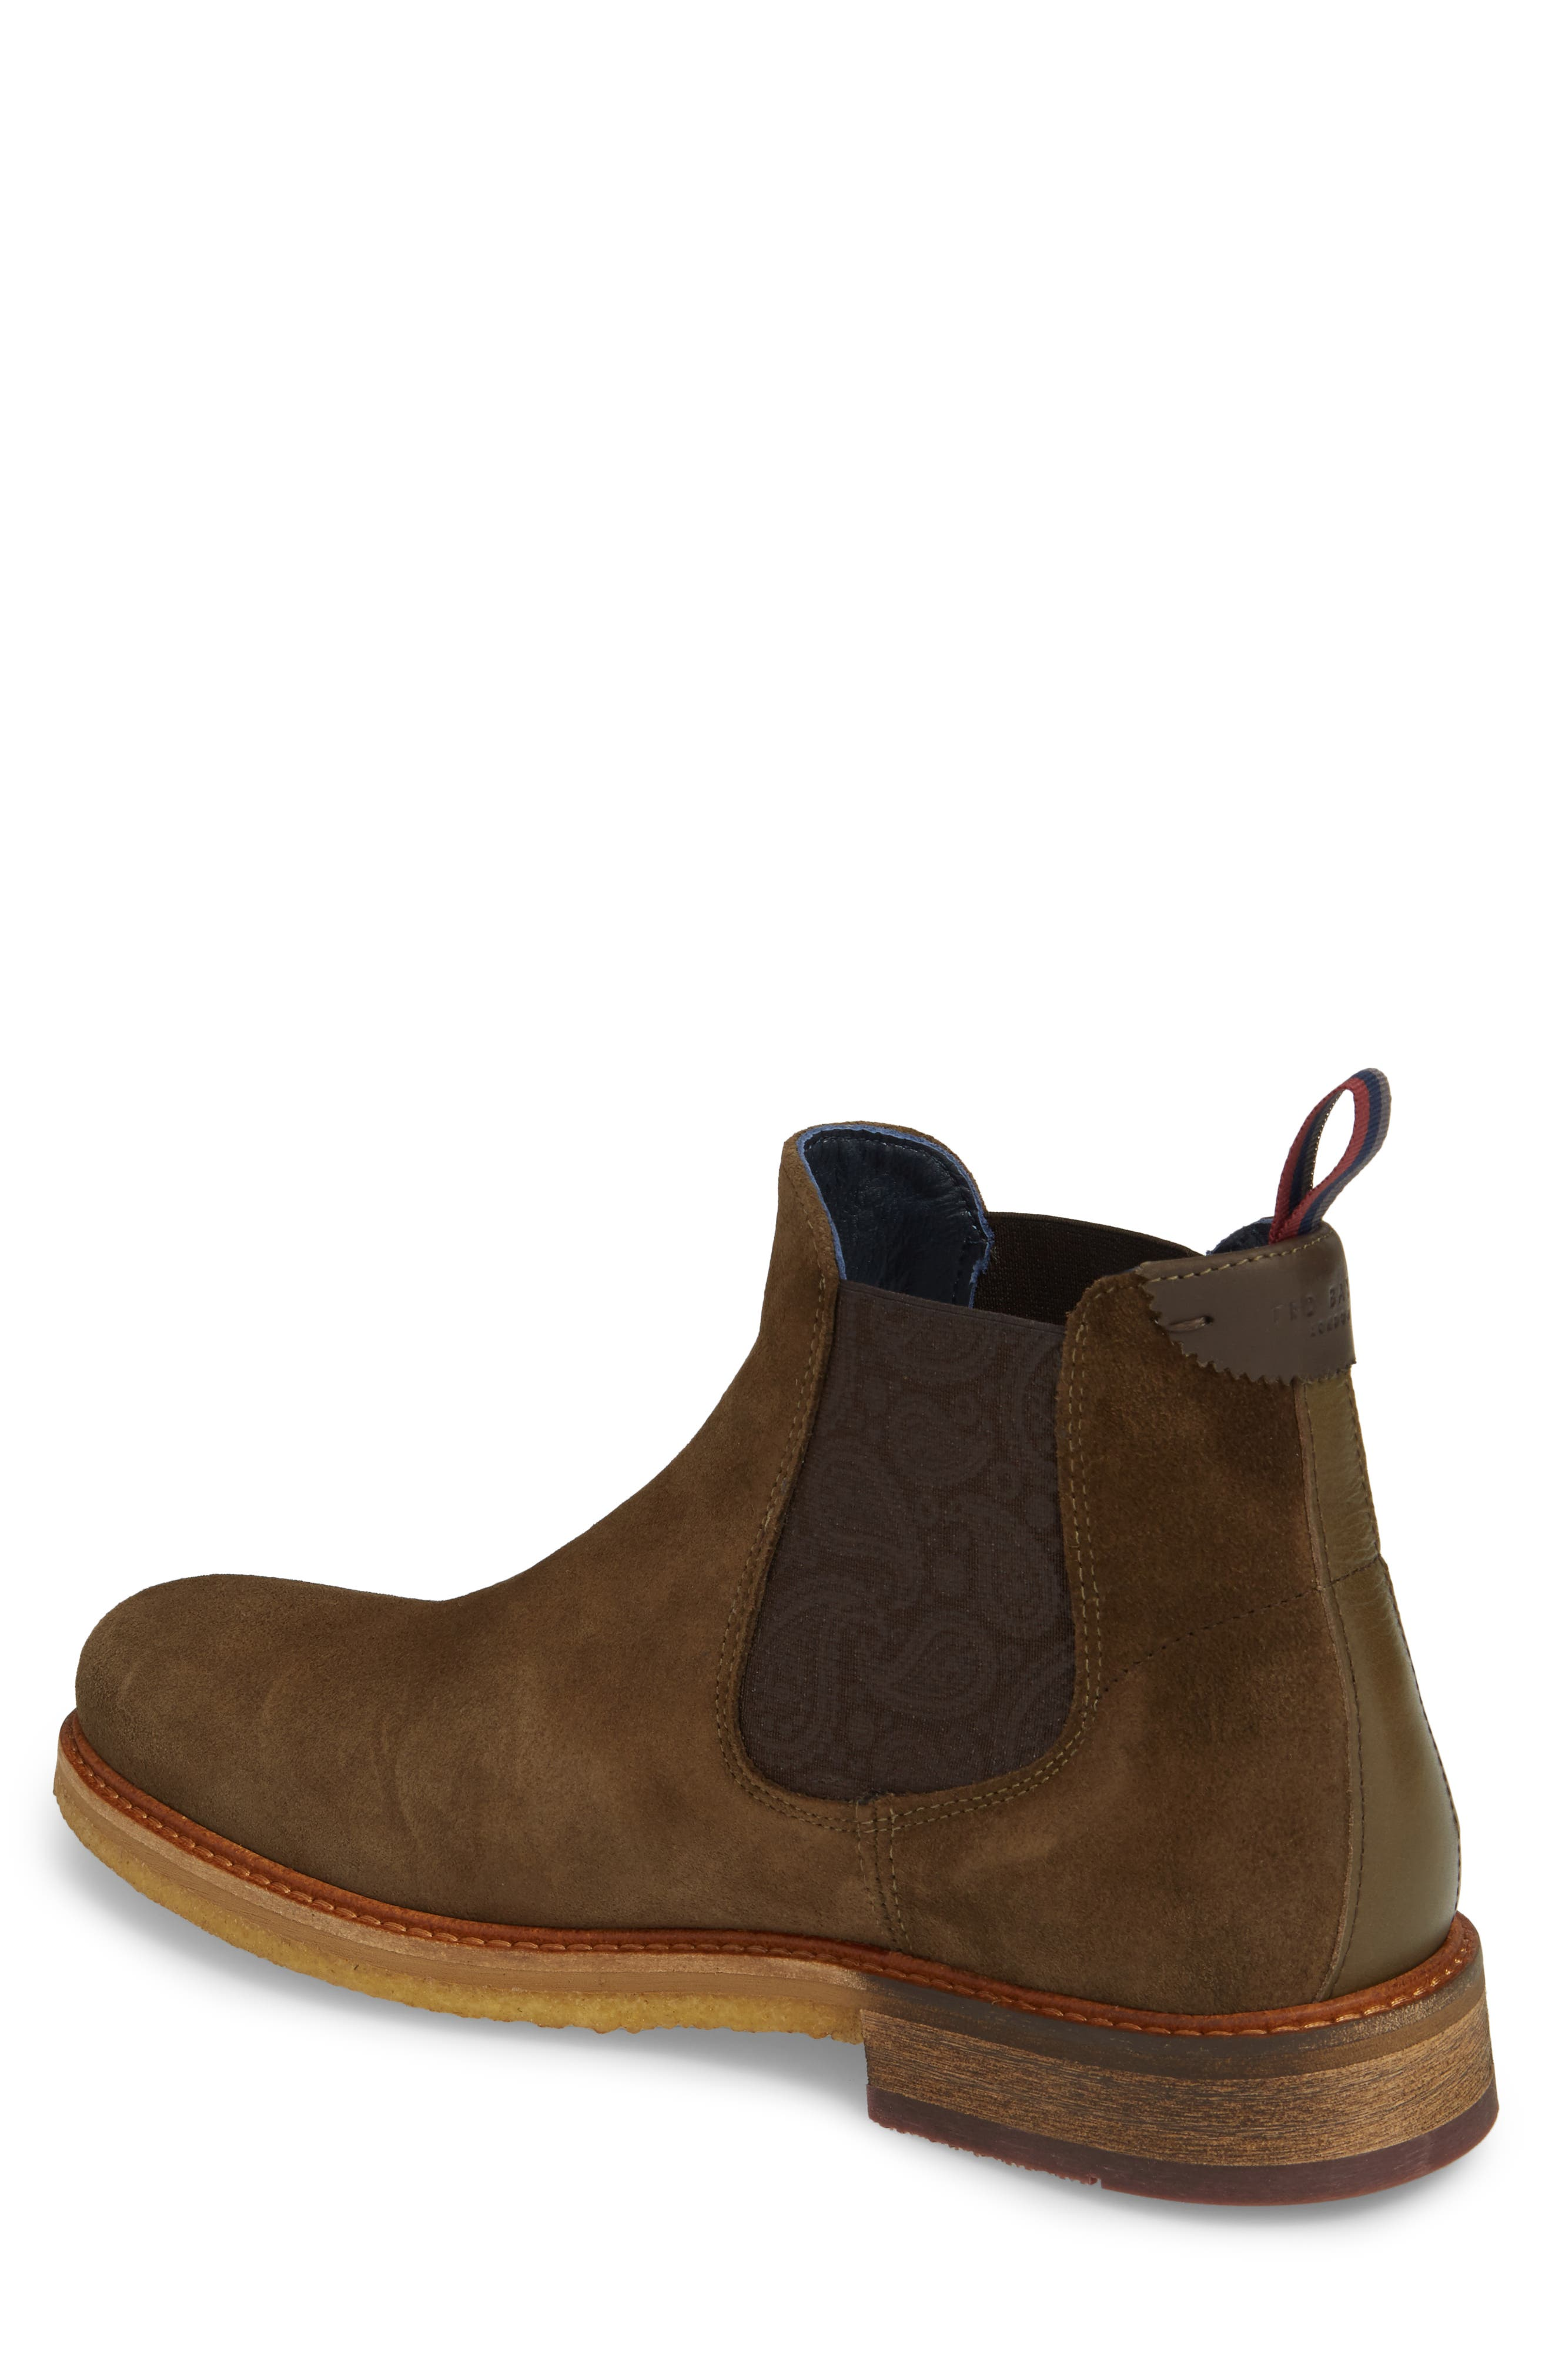 Bronzo Chelsea Boot,                             Alternate thumbnail 2, color,                             Dark Green Suede